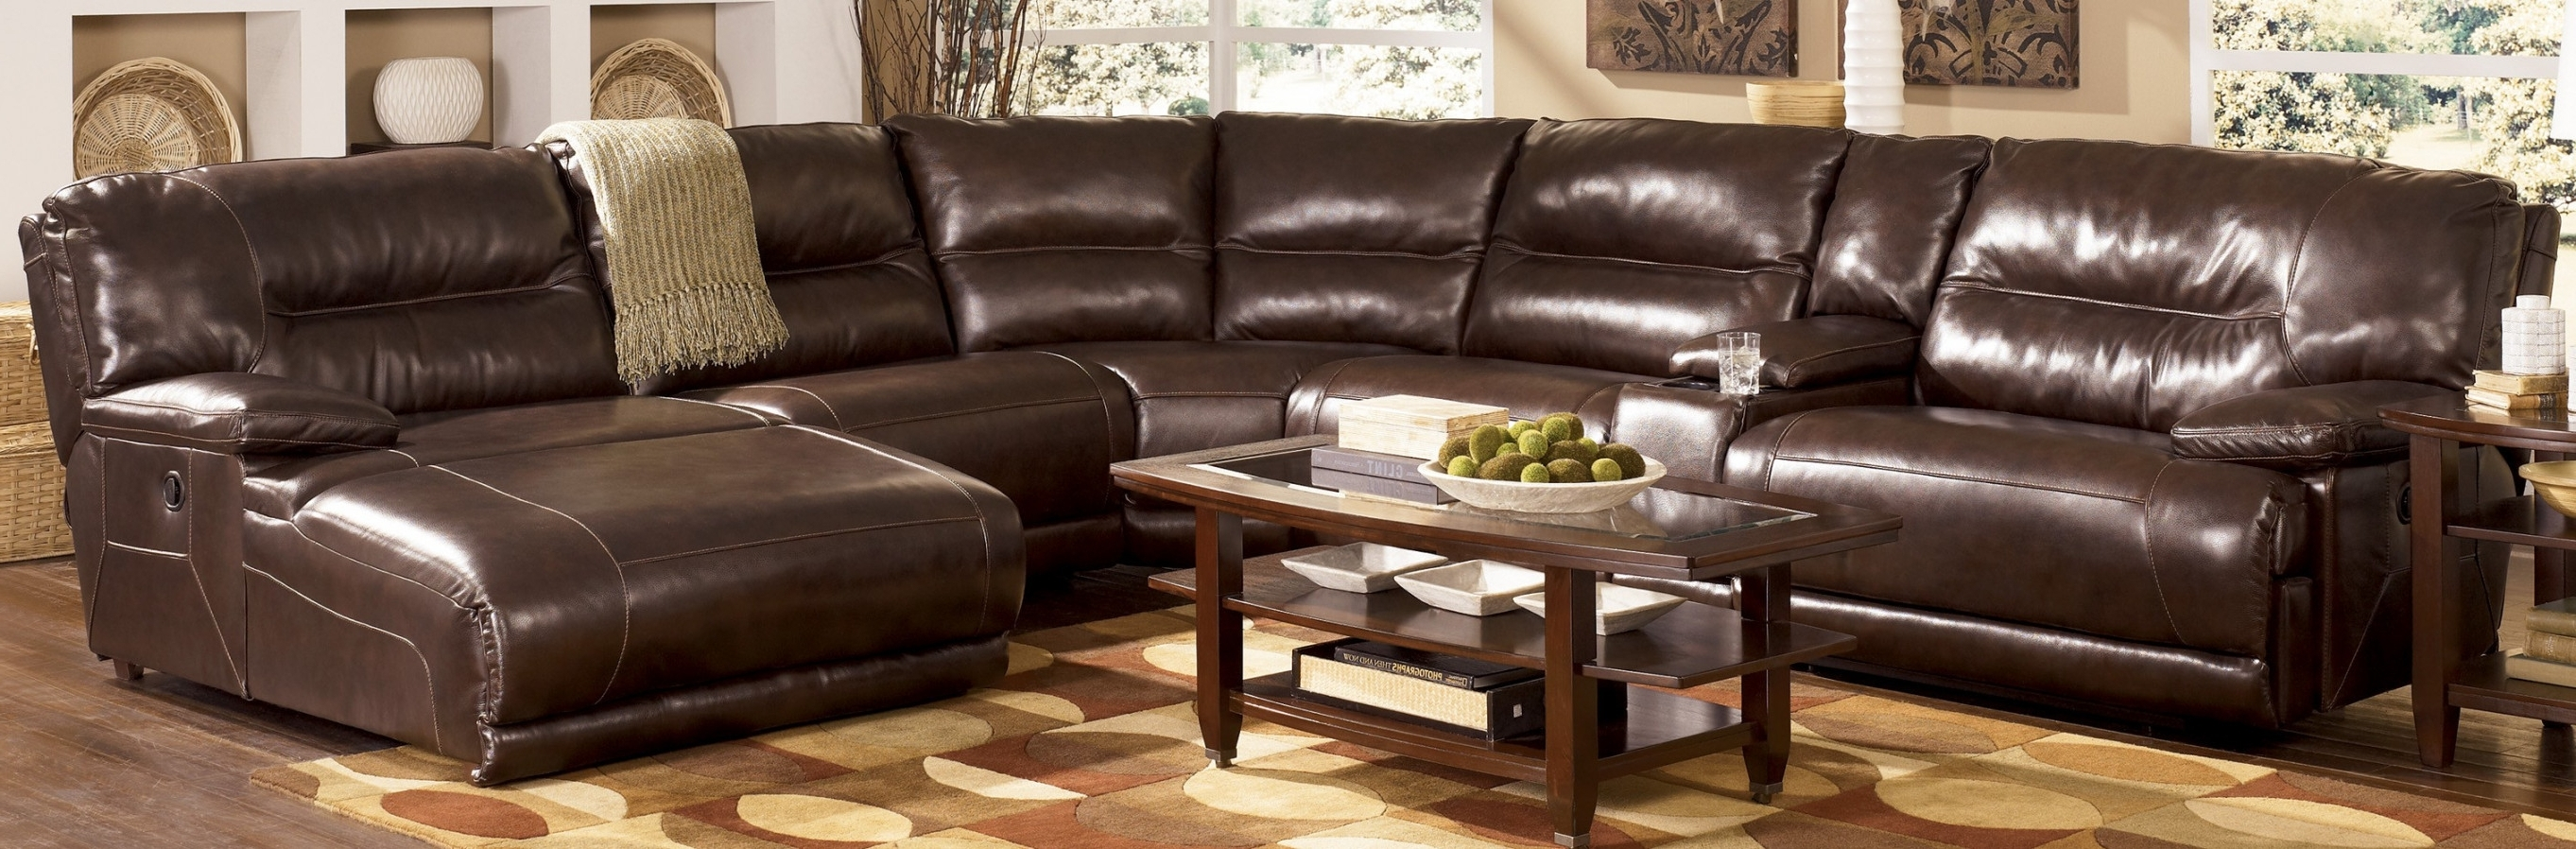 Latest Leather Sectional Sleeper Sofa Sectional Sofas With Recliners And With Regard To Sectional Sofas With Recliners Leather (View 19 of 20)